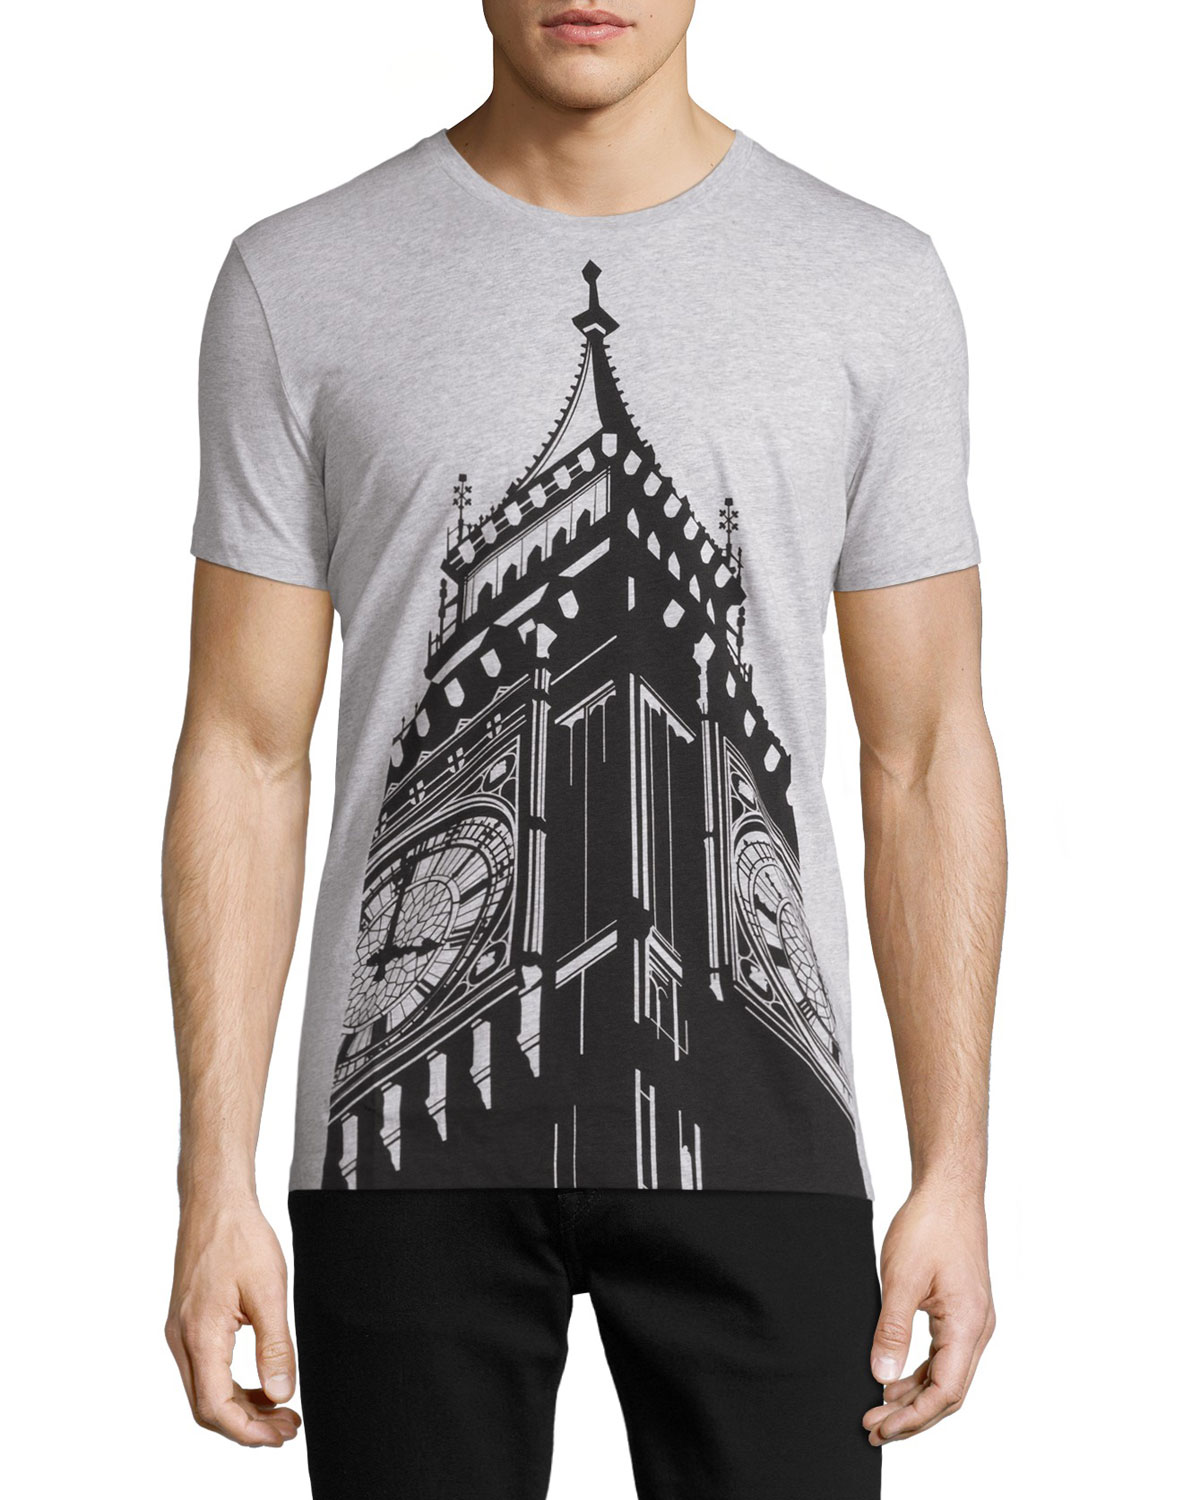 Kelmsley Big Ben Graphic T-Shirt